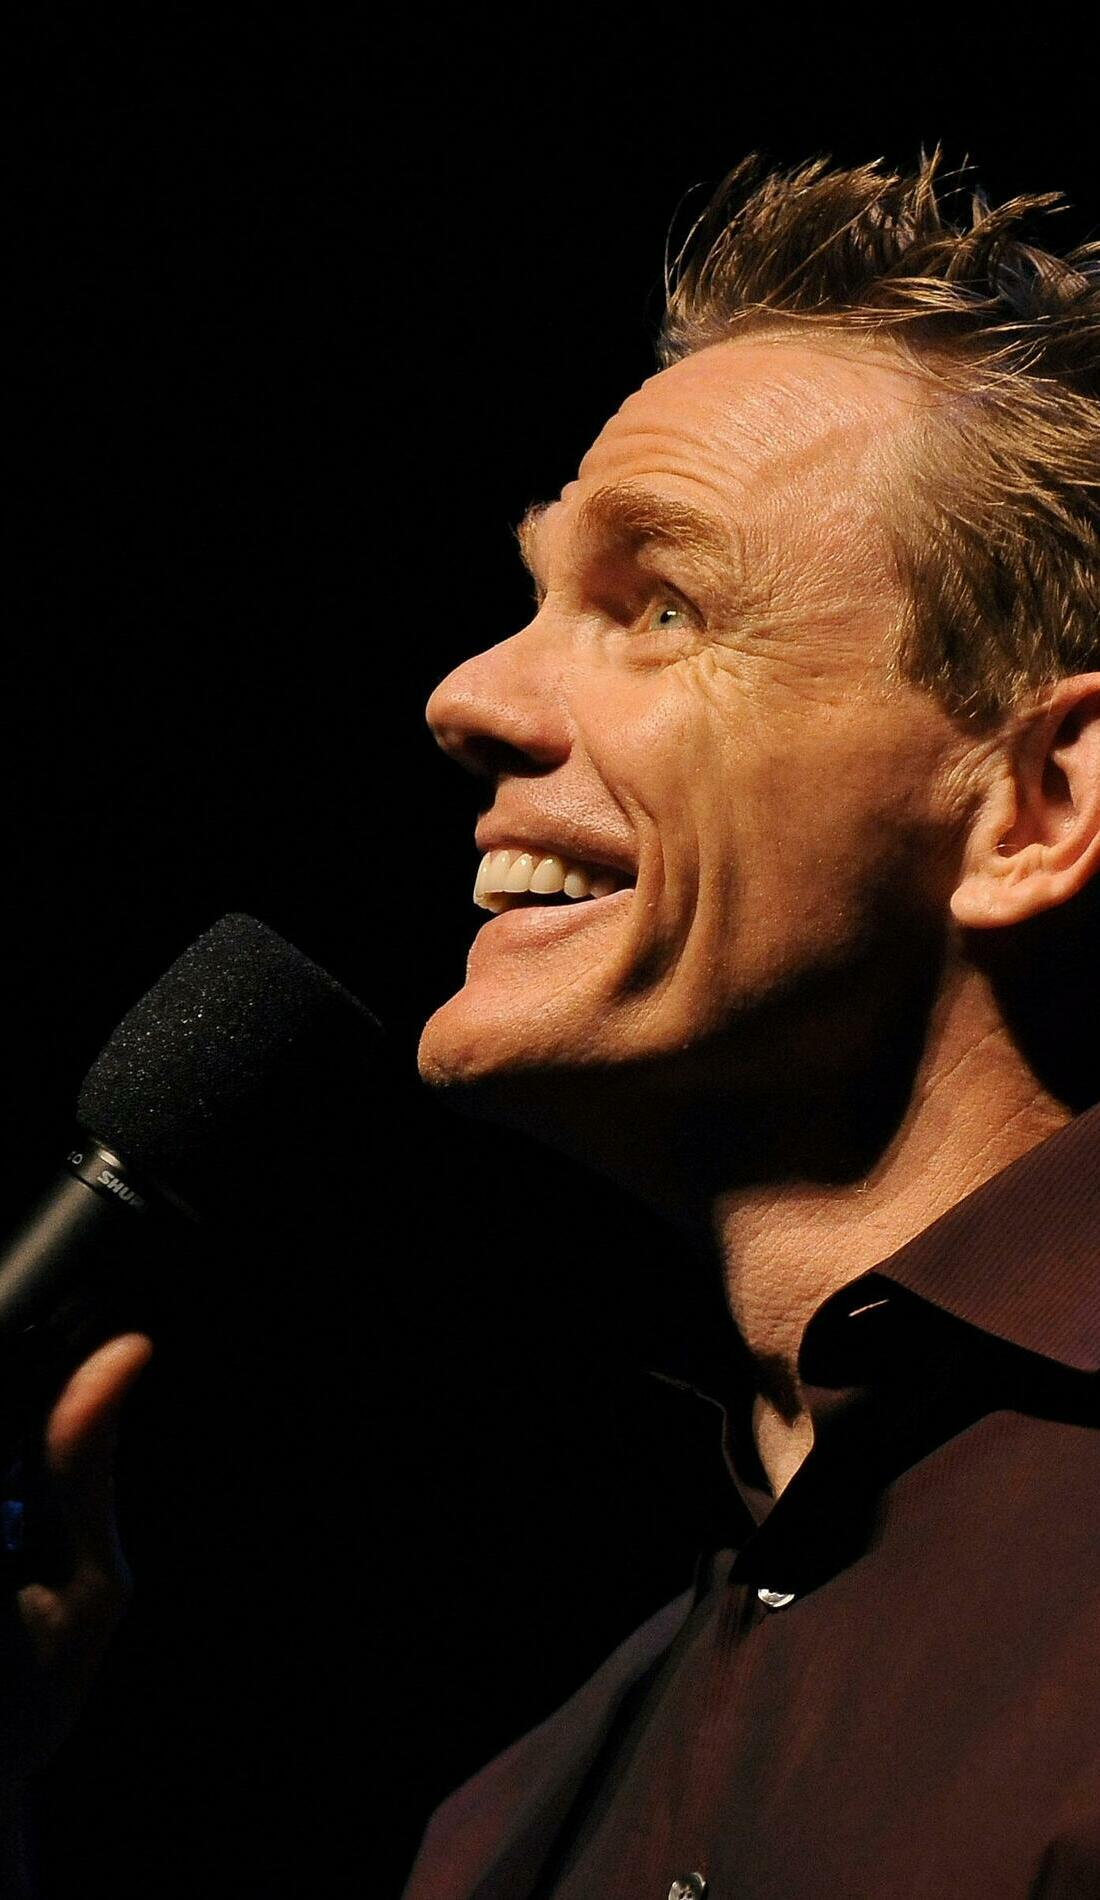 A Christopher Titus live event